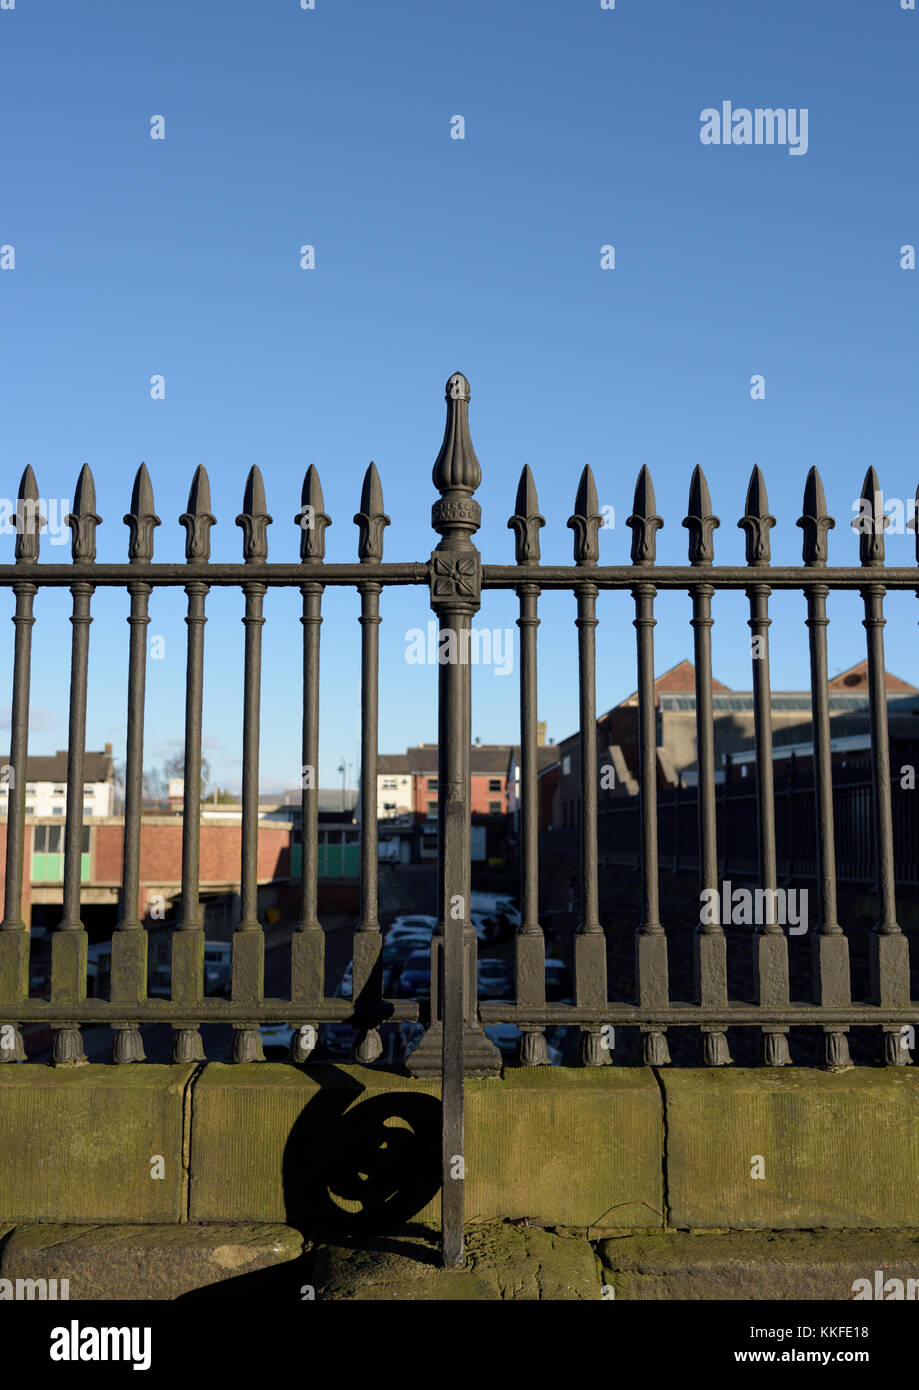 Black cast iron railings with sprouting finials on bank street bury lancashire - Stock Image